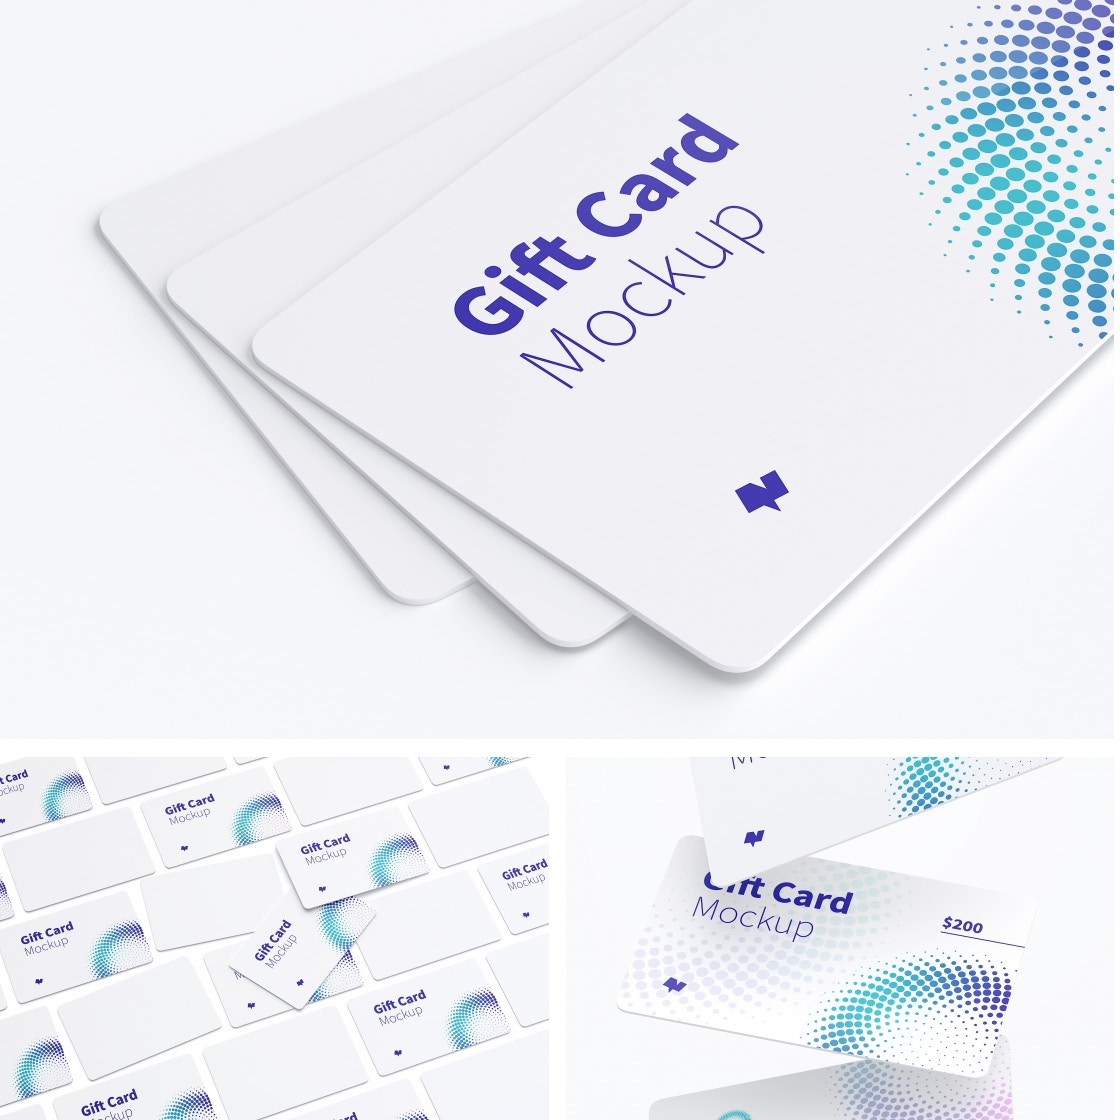 Gift Card Mockups by Original Mockups on Original Mockups